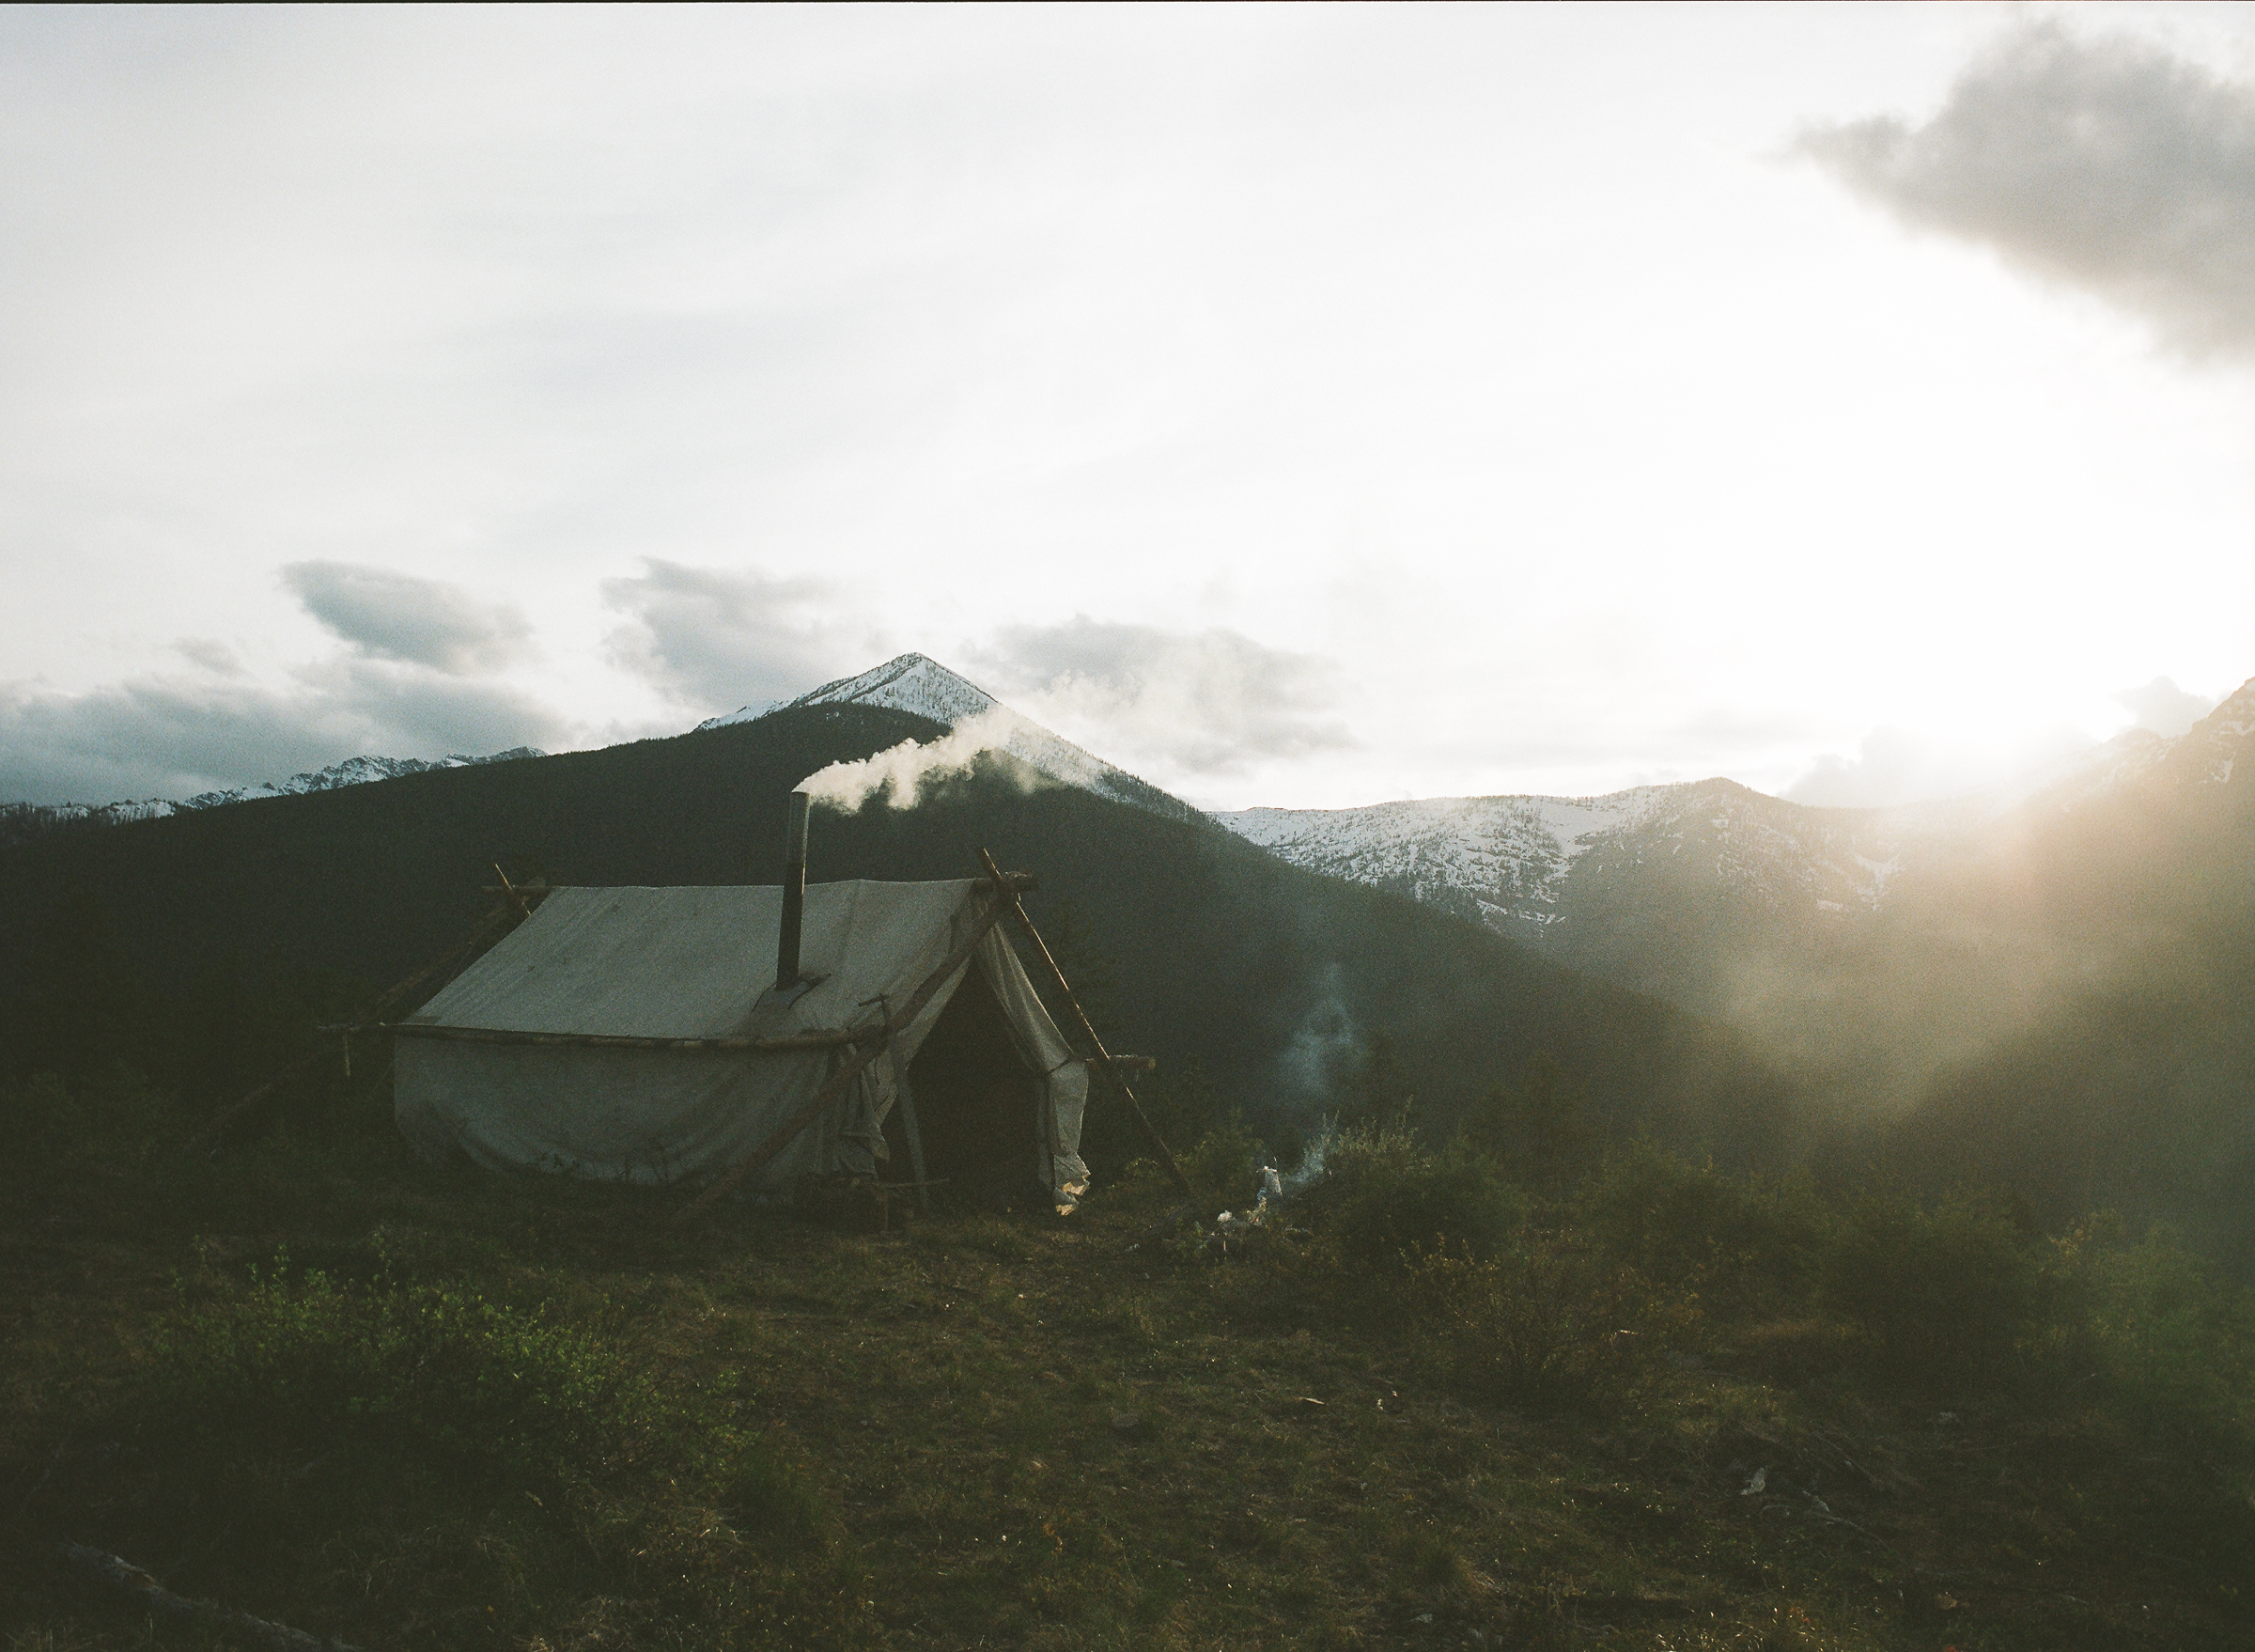 A hunter's wall tent billows out wood smoke in the backcountry of Montana.  Shot for Filson. © 2012 - 2016 C.C. Filson Co.